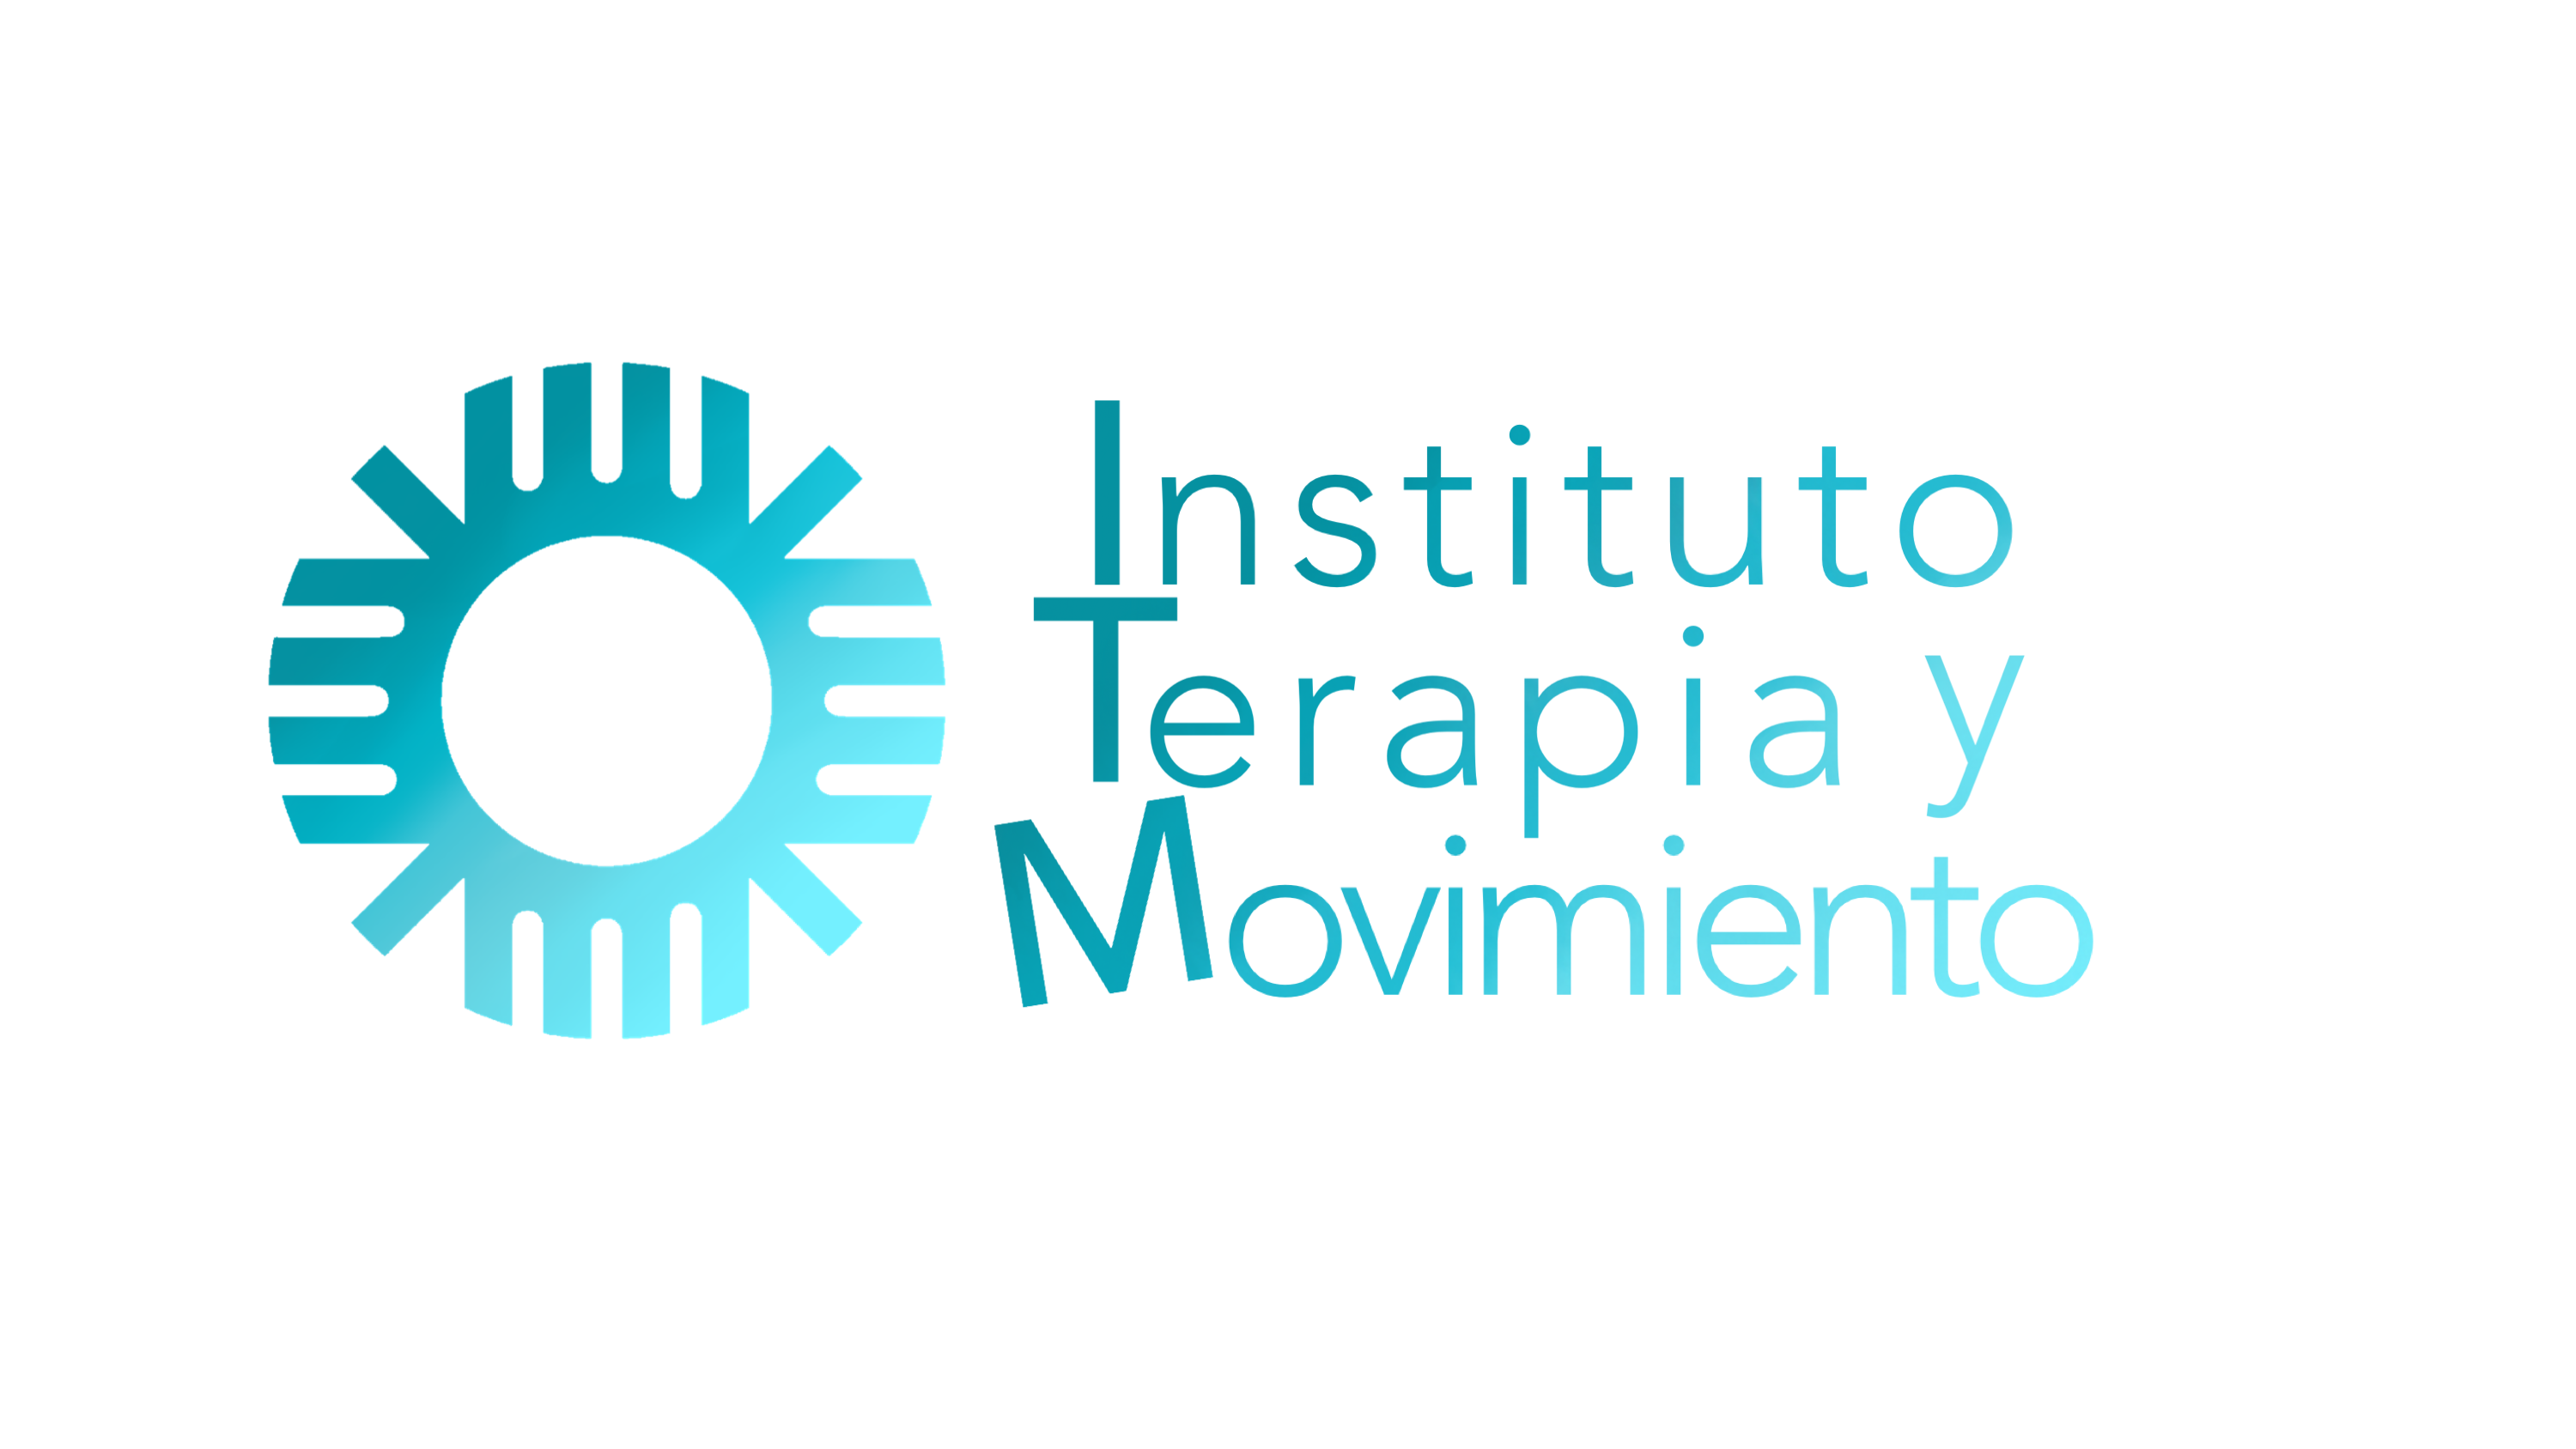 Fisioterapia Instituto Terapia y Movimiento